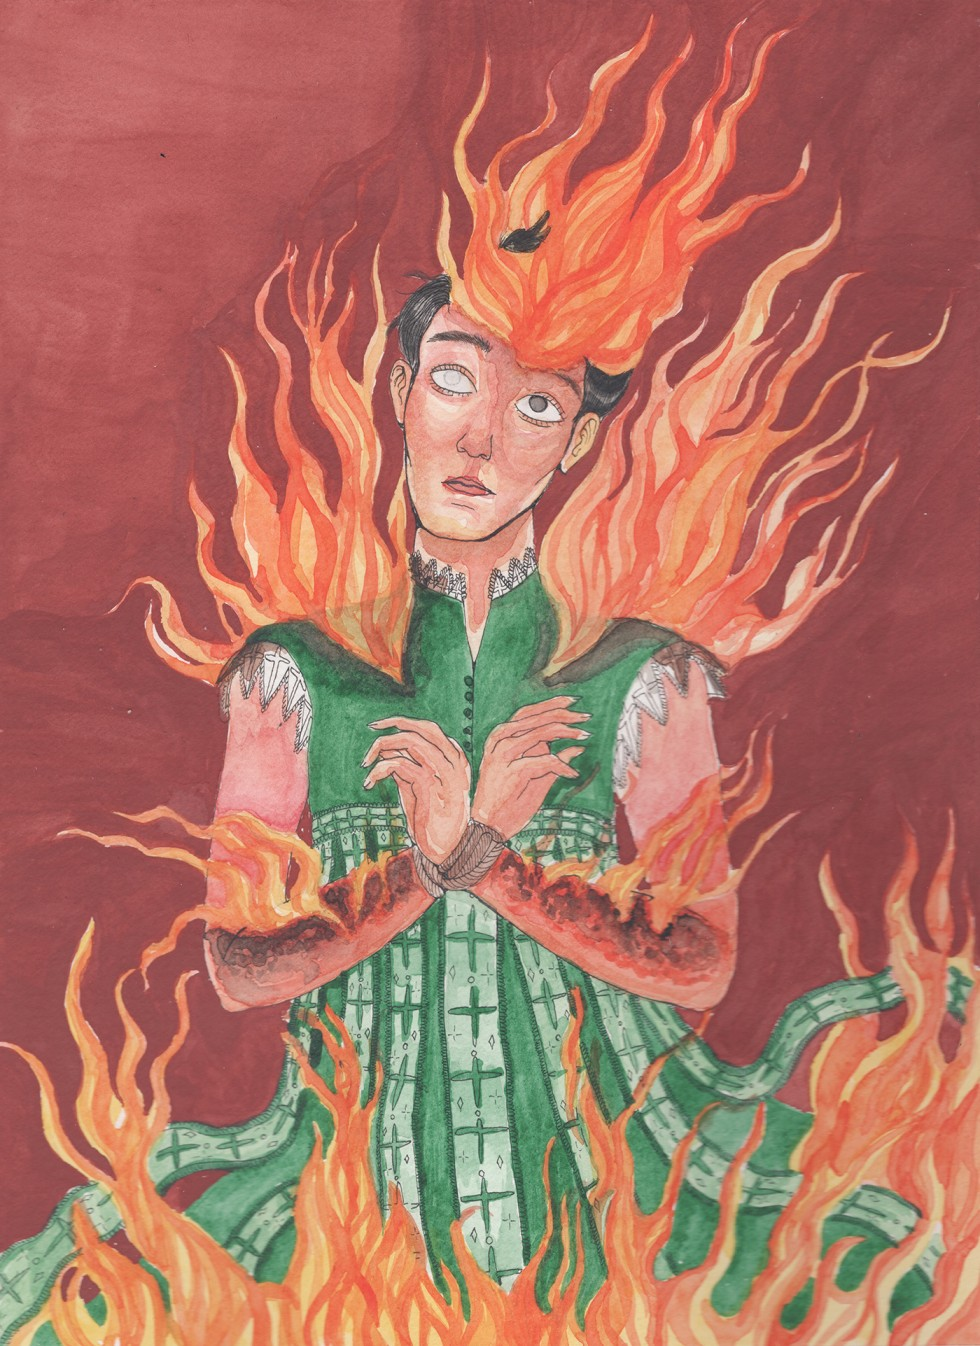 A figure stands at a stake, engulfed in flame. His vestments of green and lace are singed at the edges, and the fire licks at his hair like a crown. His right eye is already changed translucent and gray by the fire, and the skin of his arms is burned bril